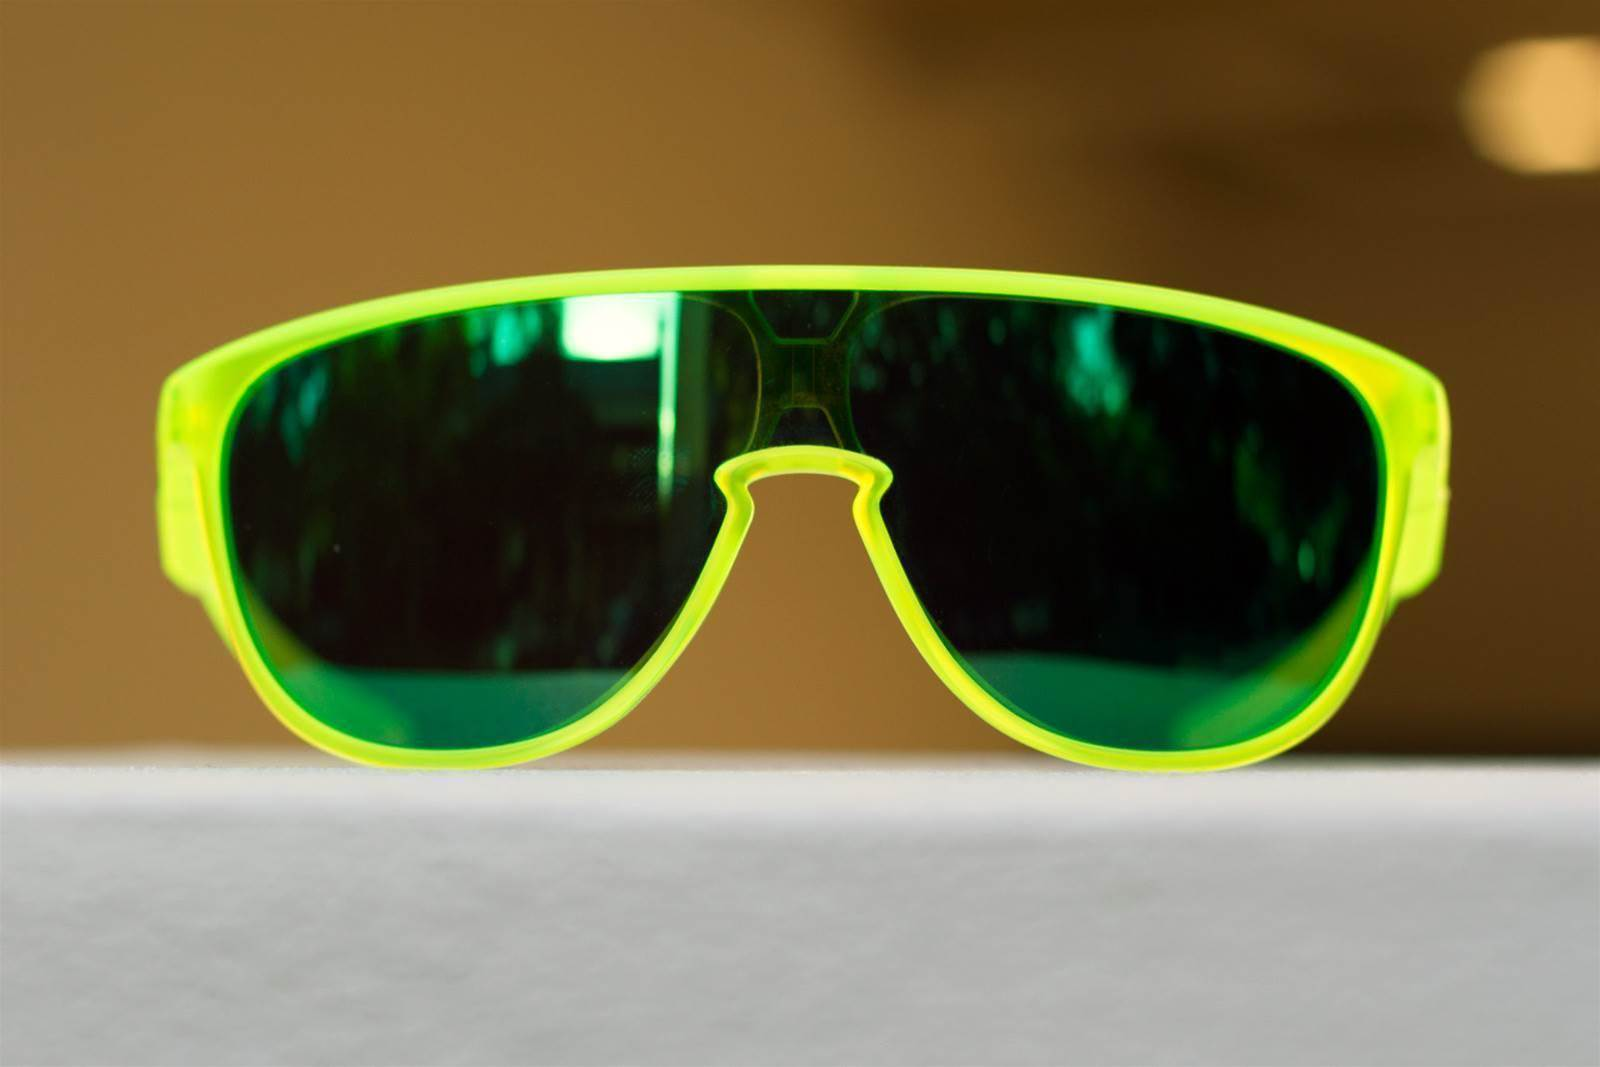 TESTED: Oakley Trillbe sunglasses